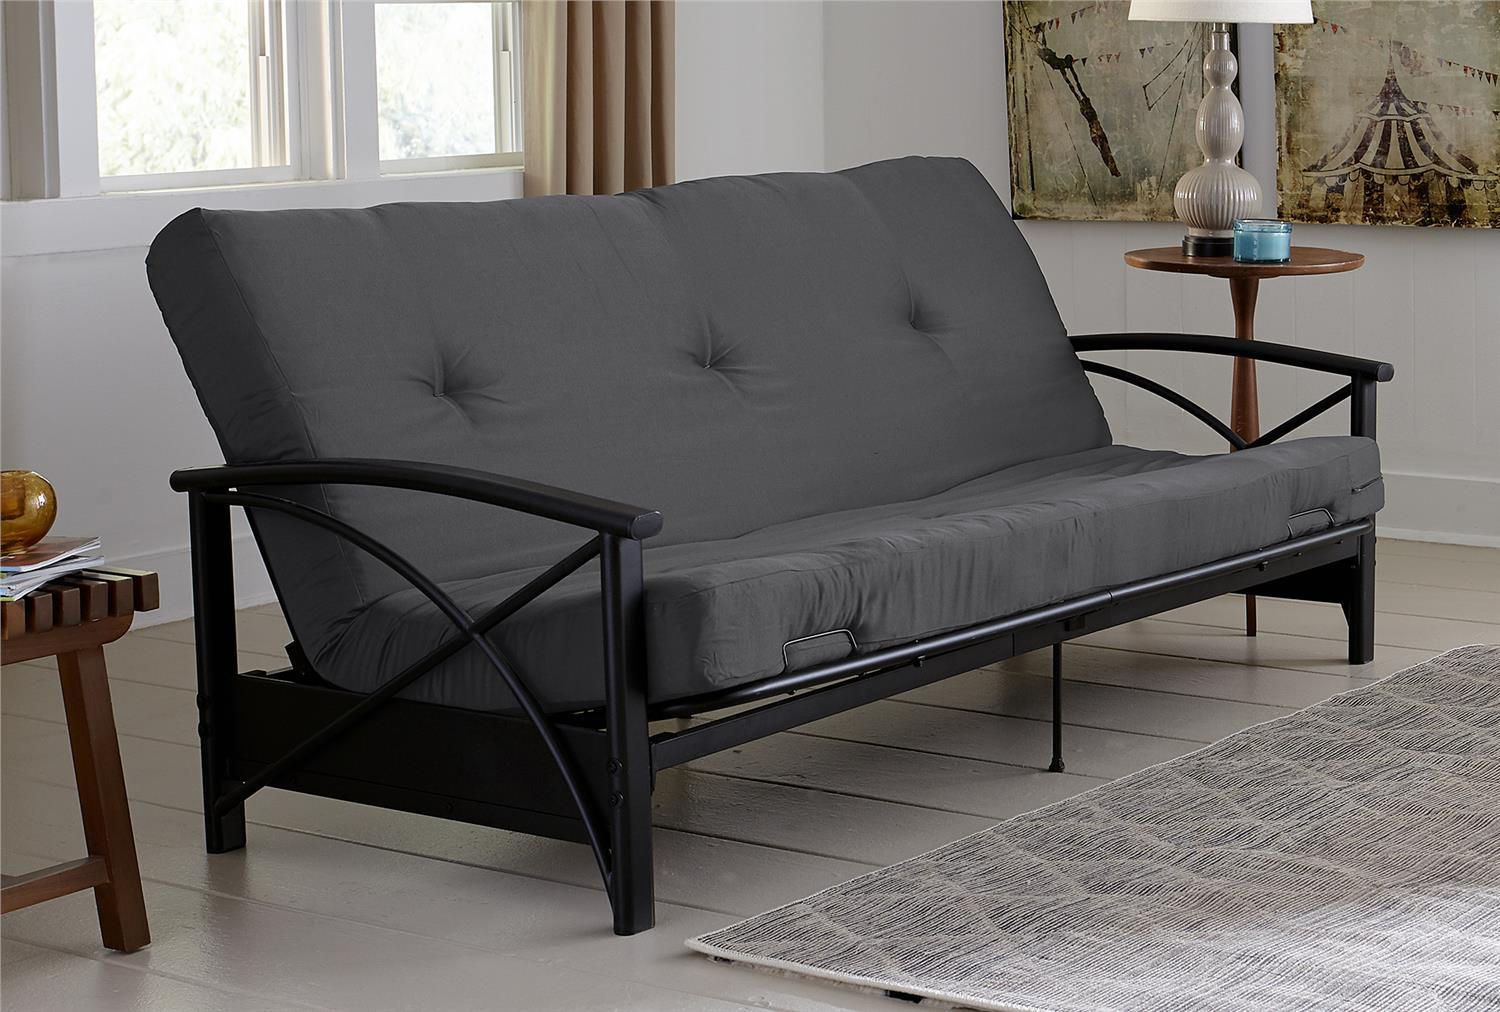 salese image of stunning covers futons size futon locationfuton large my inspirations sales mattress coversefuton stores near location me futonattress nearfuton neary